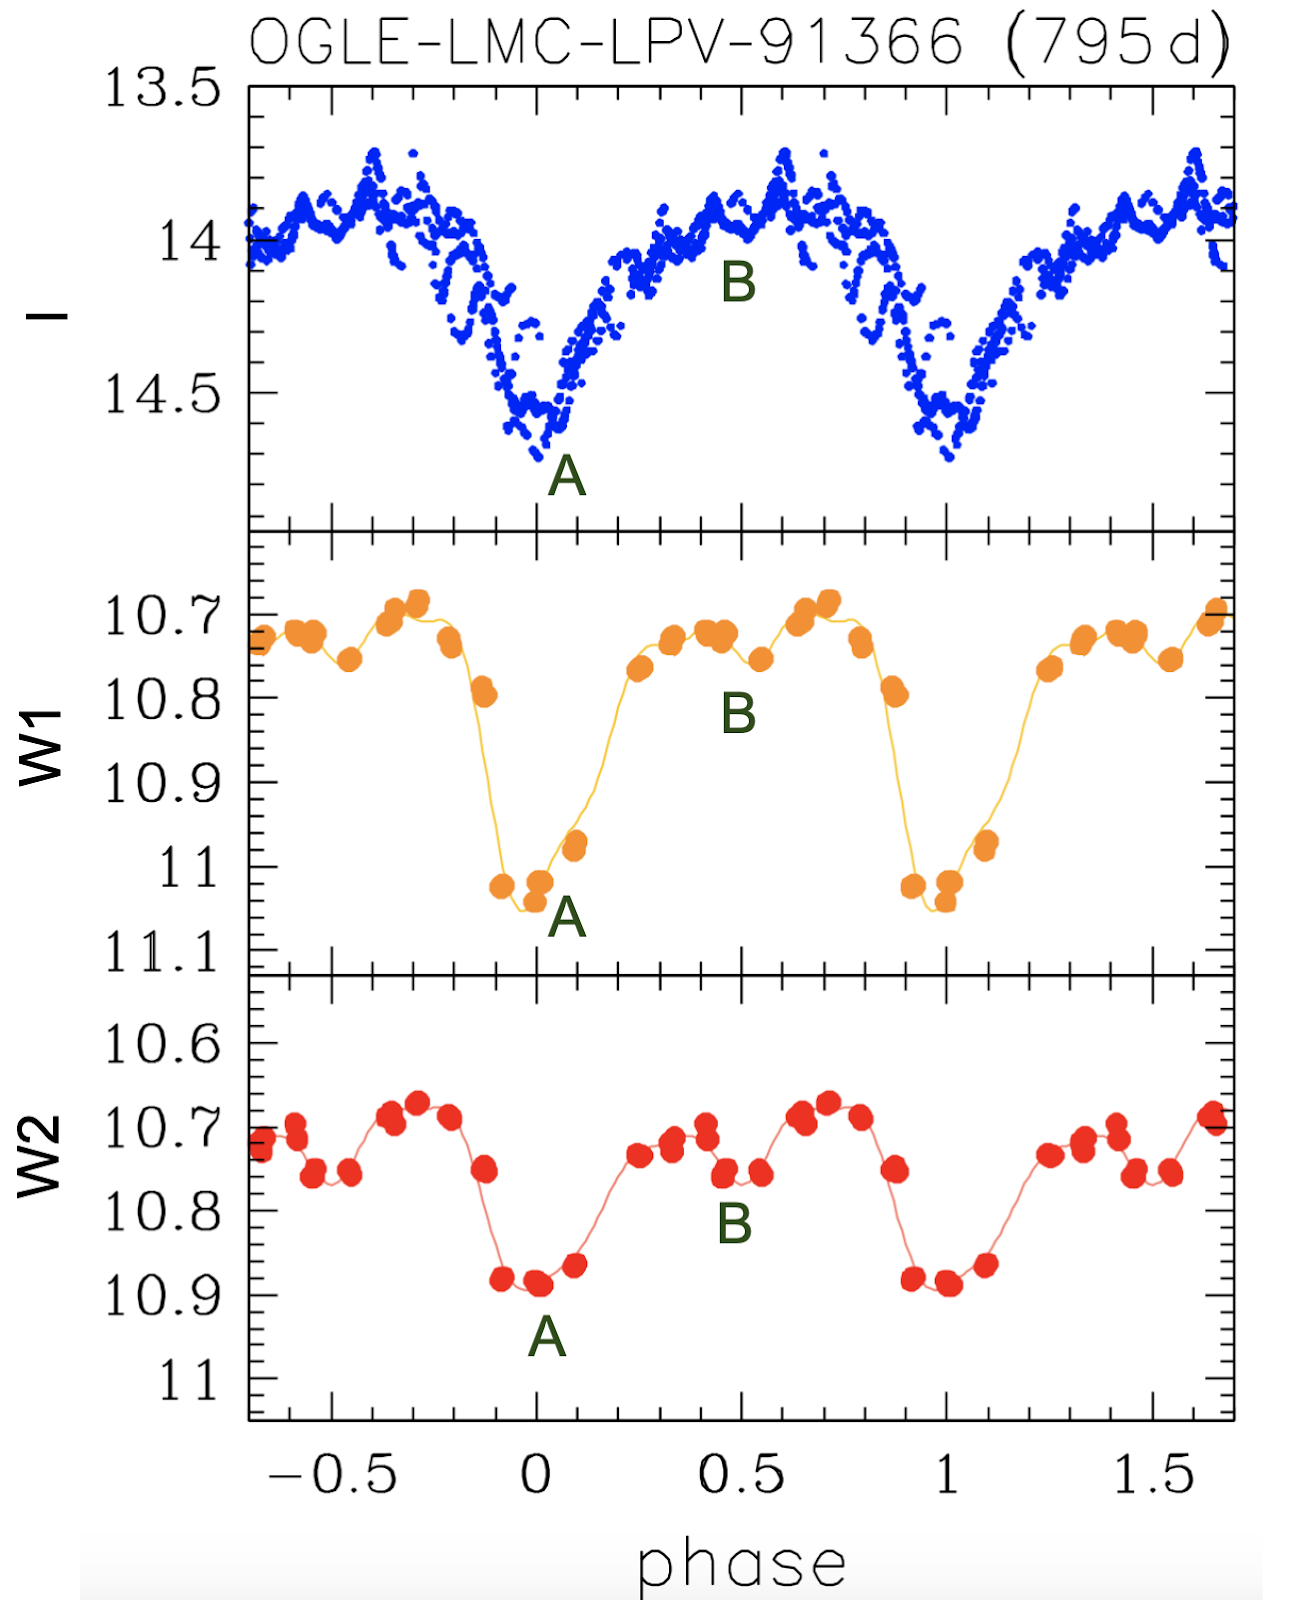 The figure shows the phase-folded light curve of a red giant star showing LSP variations. The top panel shows a densely sampled light curve with two minima at phase = 0 and phase = 1. These two minima are marked as 'A'. The middle and bottom panels show a sparsely sampled IR light curves of the star. In addition to the two minima marked as 'A', there is a third minimum in both these light curves at phase = 0.5. This minimum is marked as 'B'.